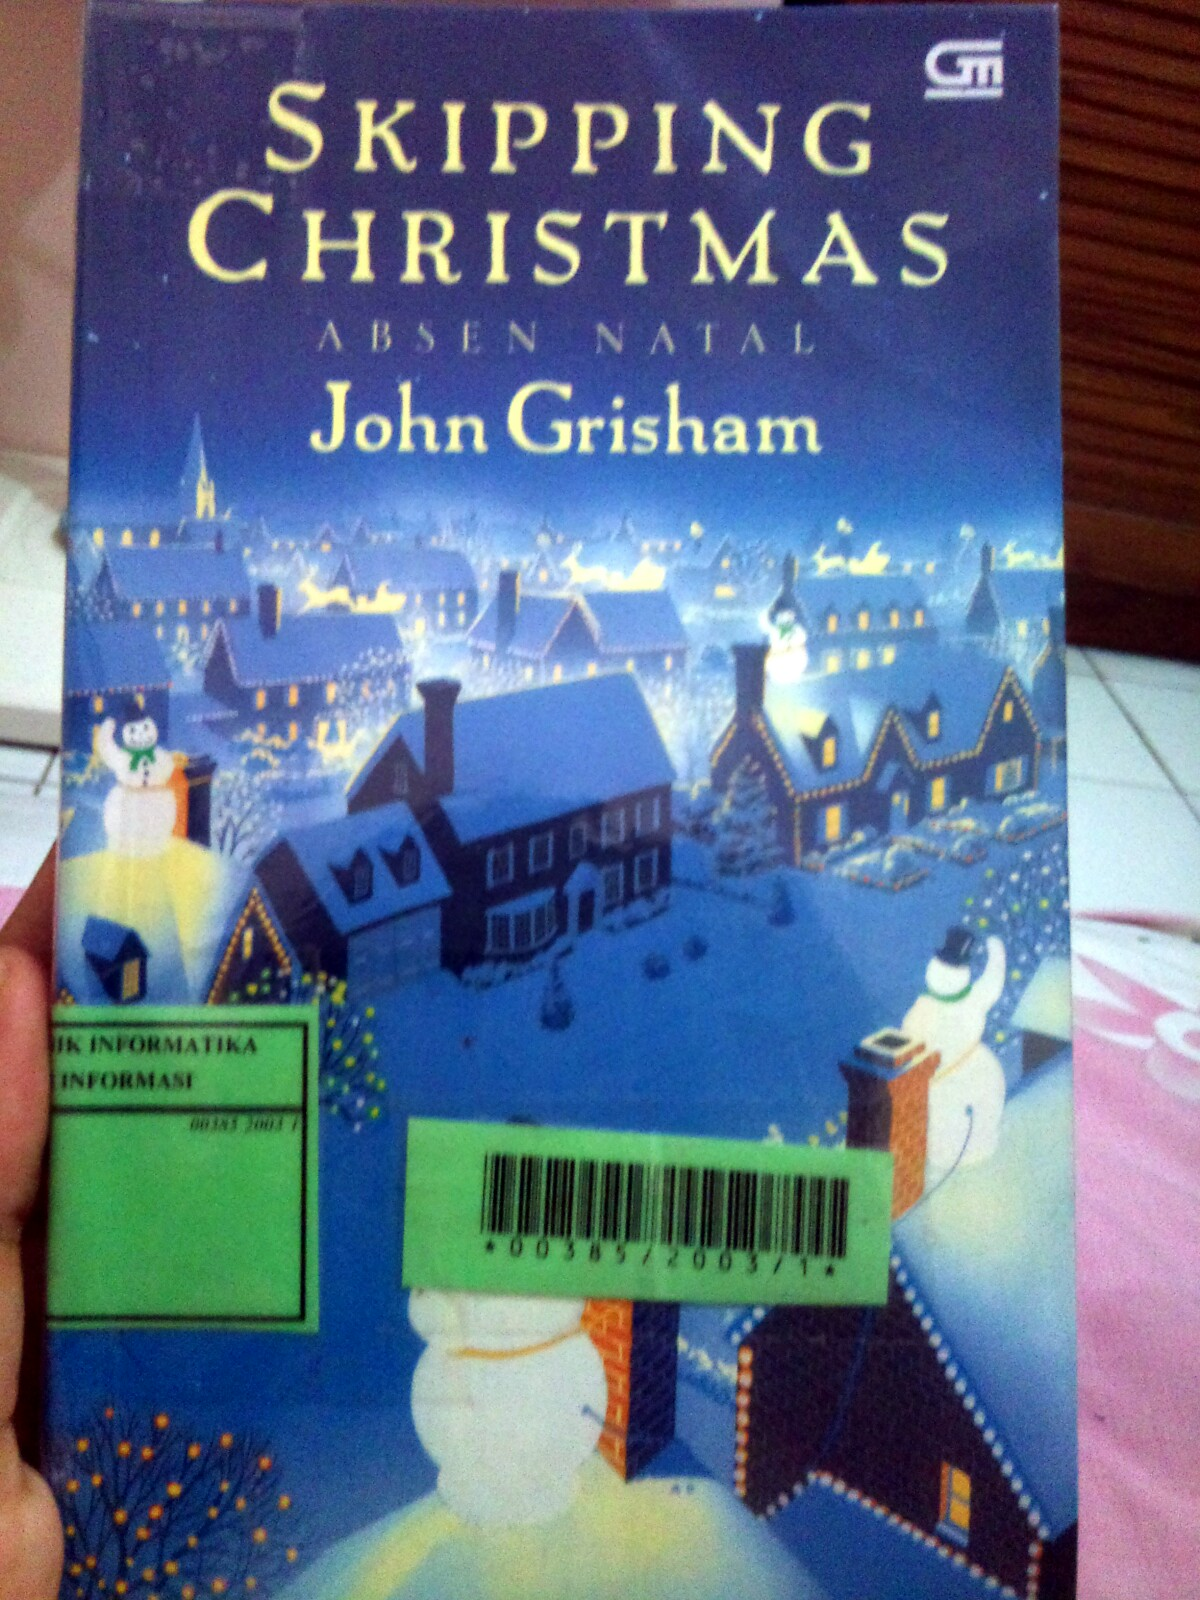 Skipping Christmas.Kuroneko Book Club Review Skipping Christmas John Grisham